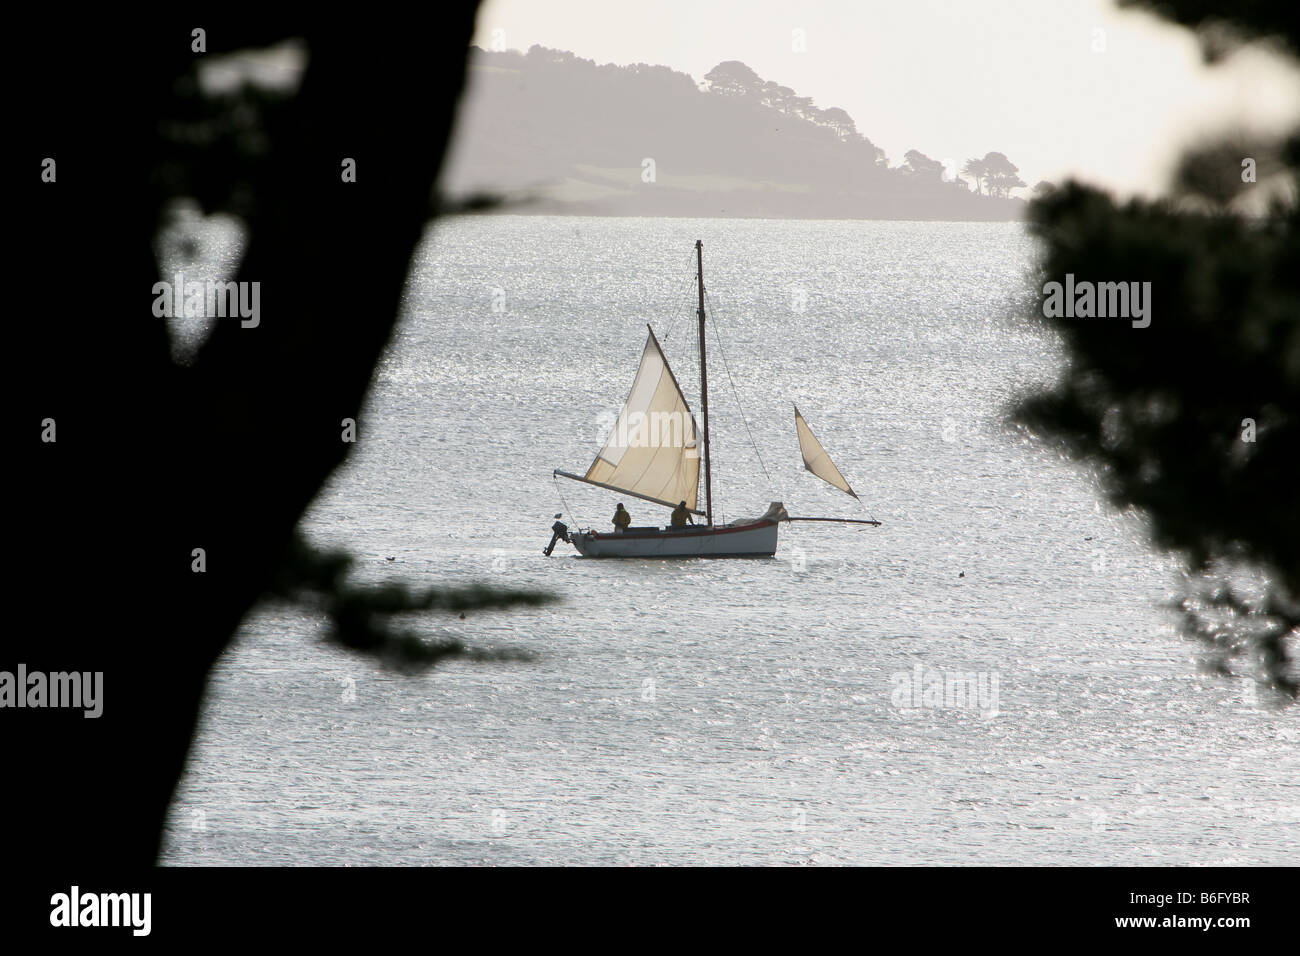 Oyster fishermen in Falmouth working boats sailing on the Carrick Roads Cornwall in Winter Stock Photo